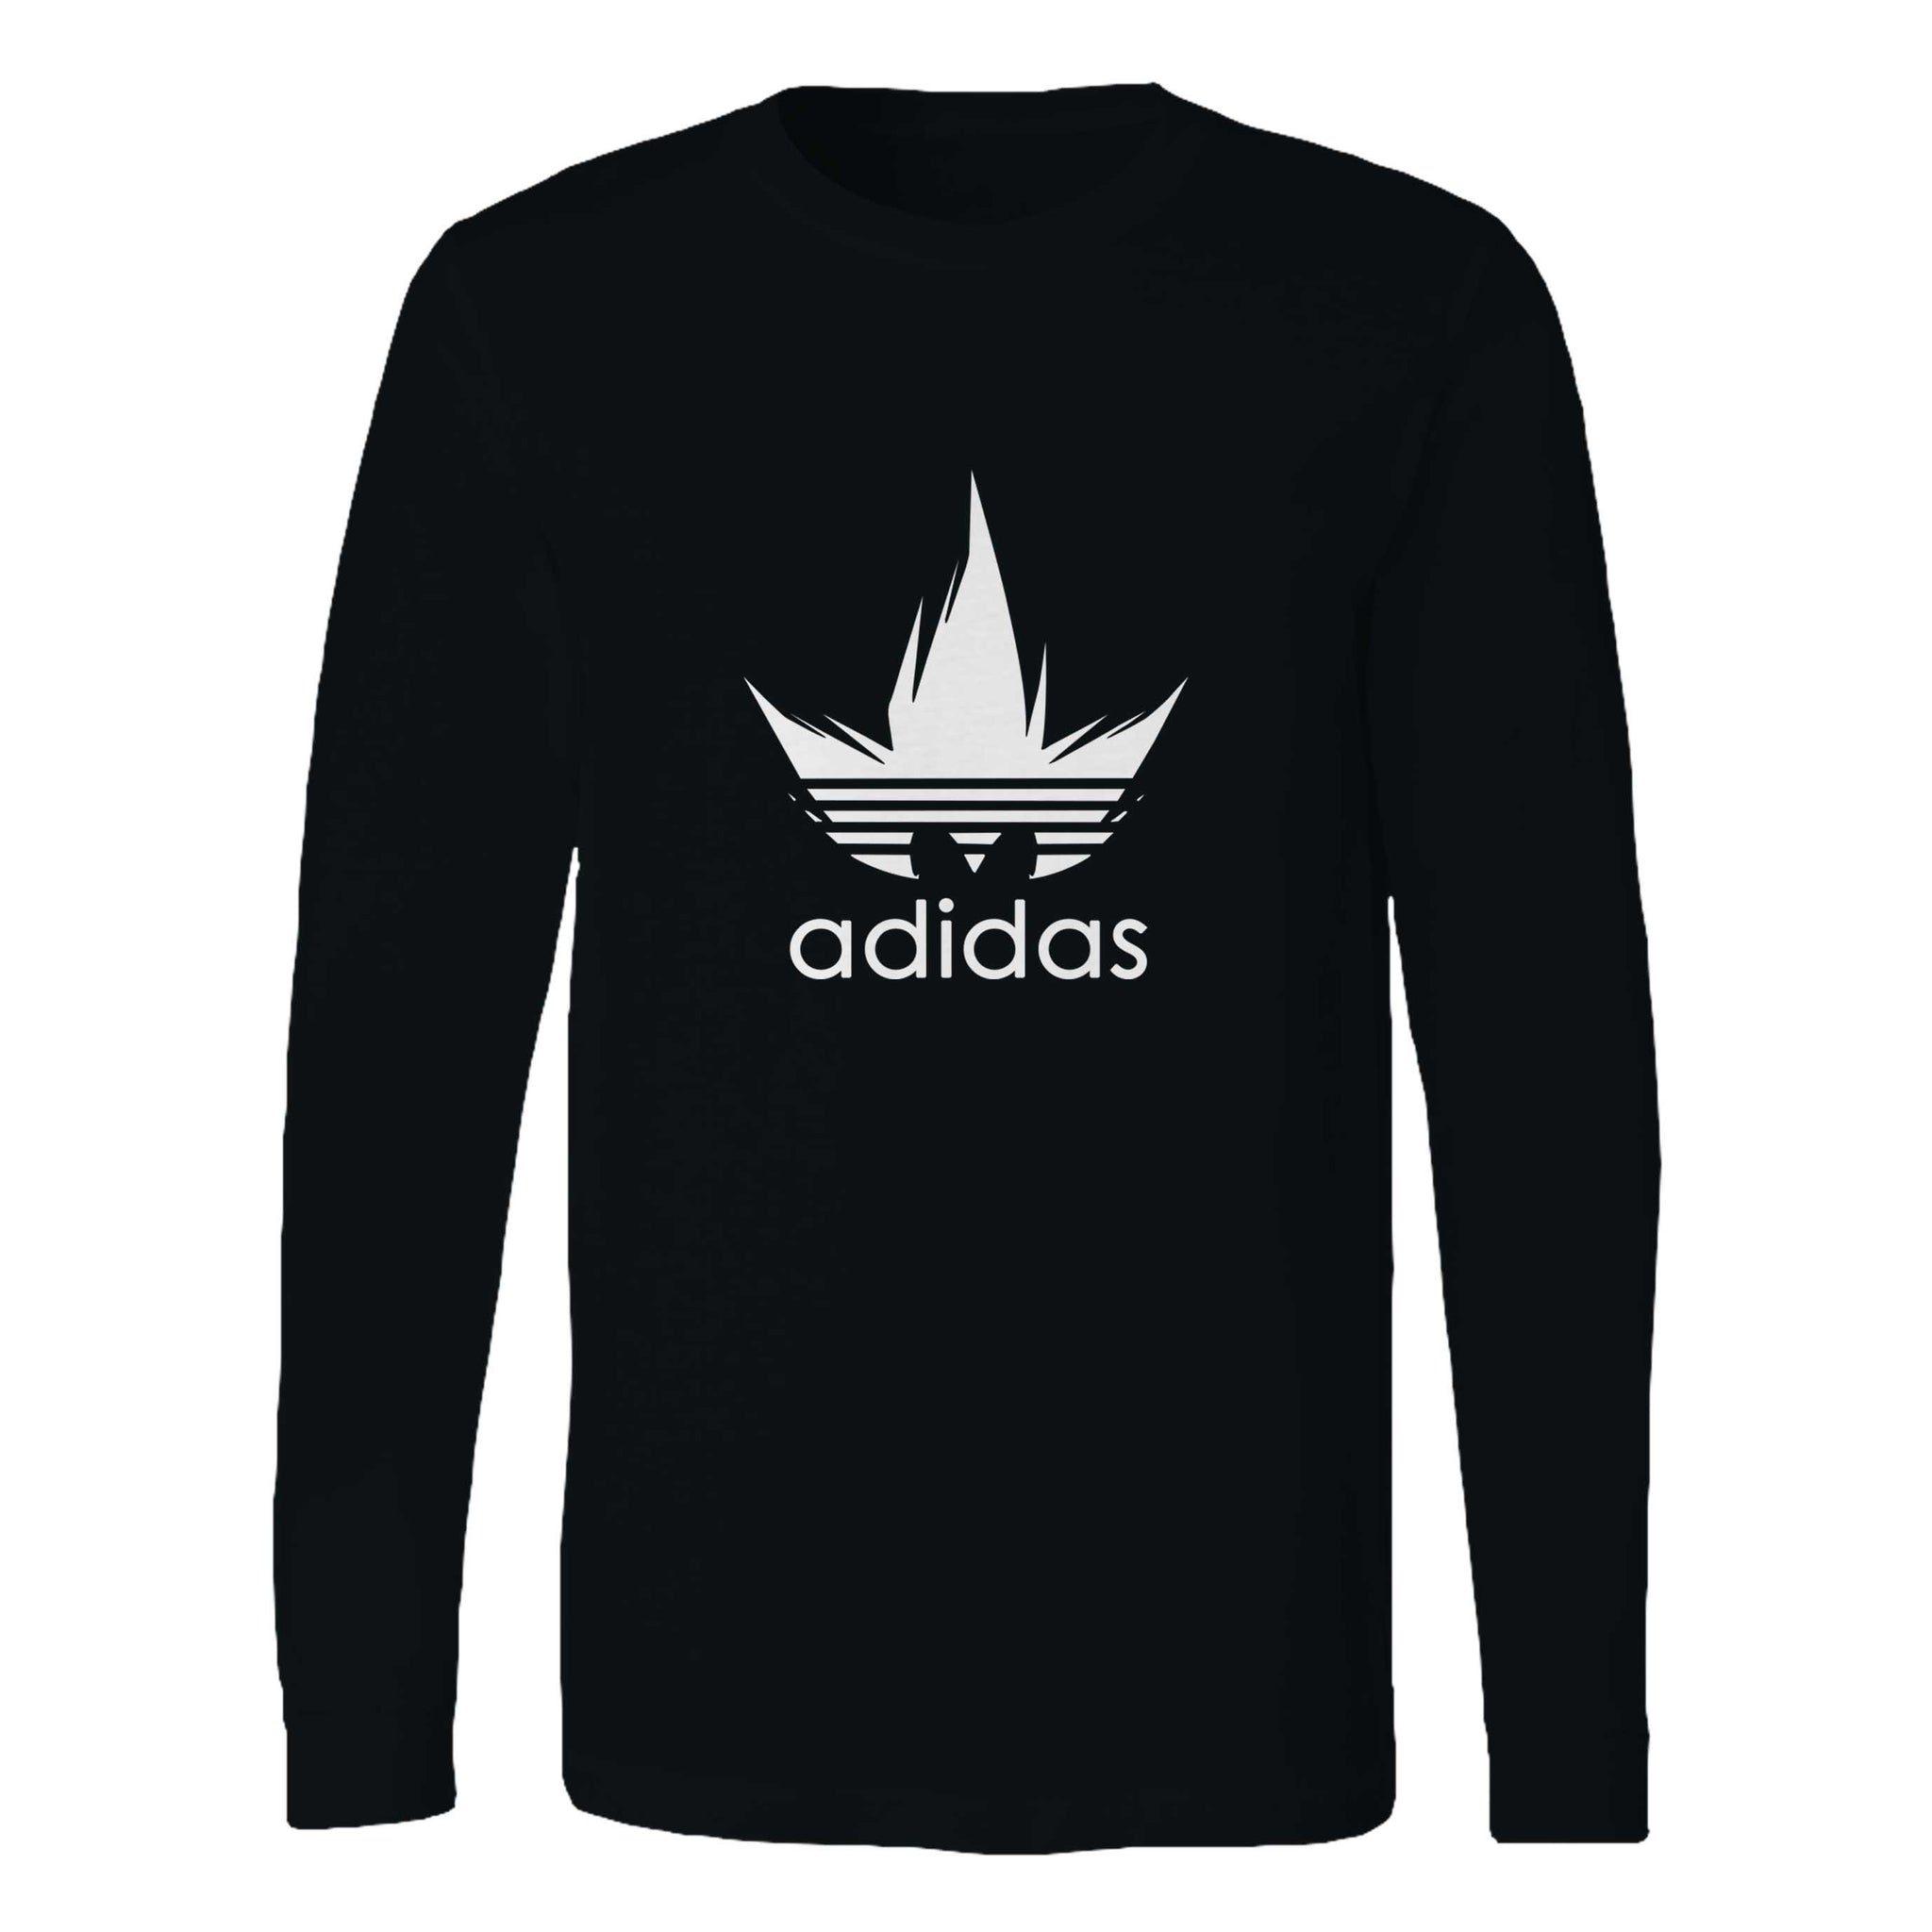 Adidas Saiyan Long Sleeve T-Shirt